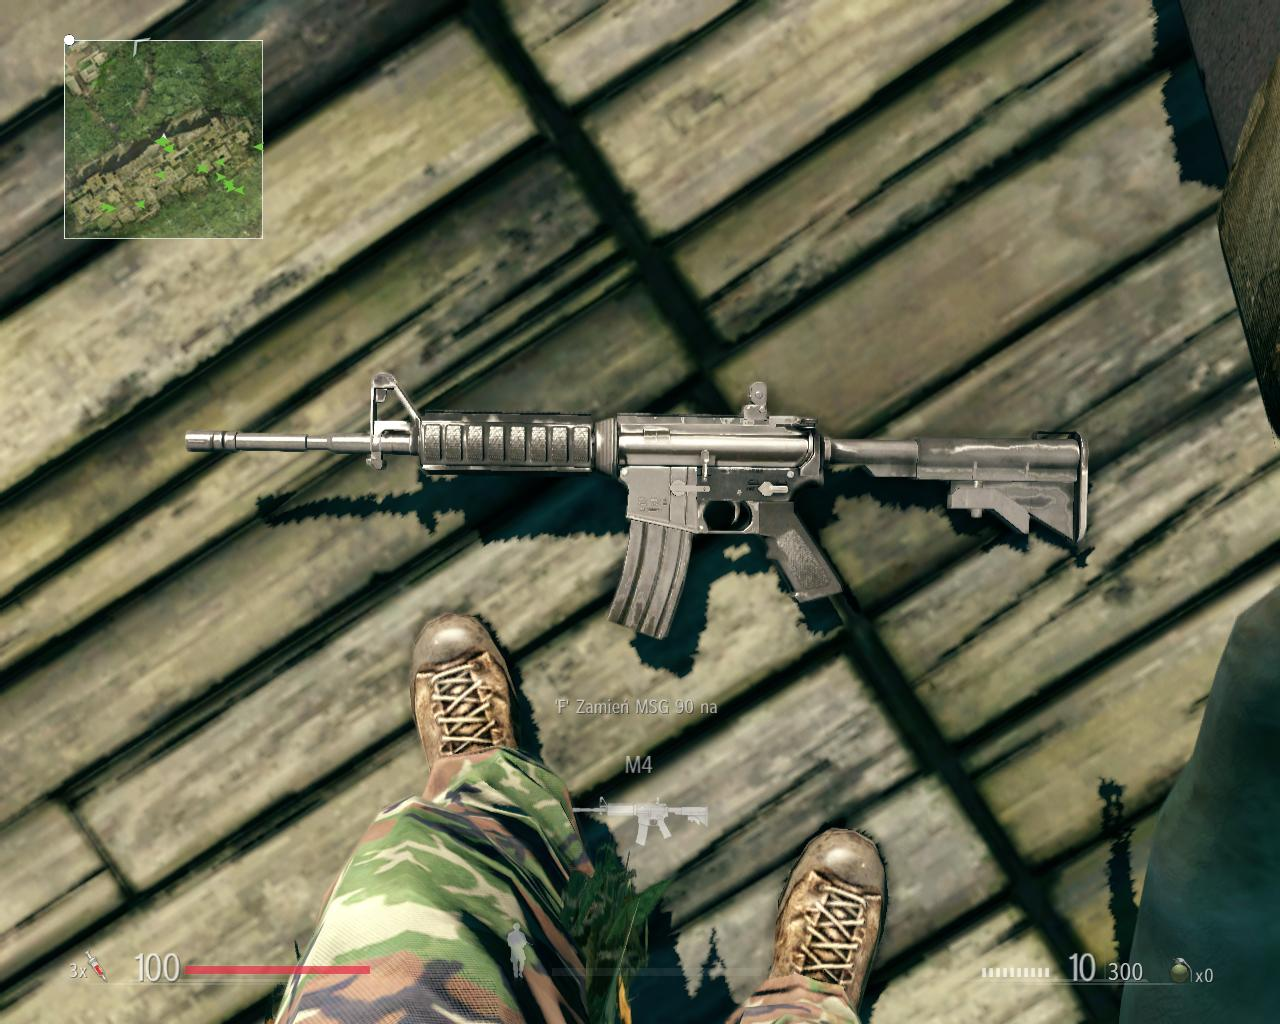 http://www.imfdb.org/images/1/1d/Sniper_Ghost_Warrior_M4a1_world.jpg